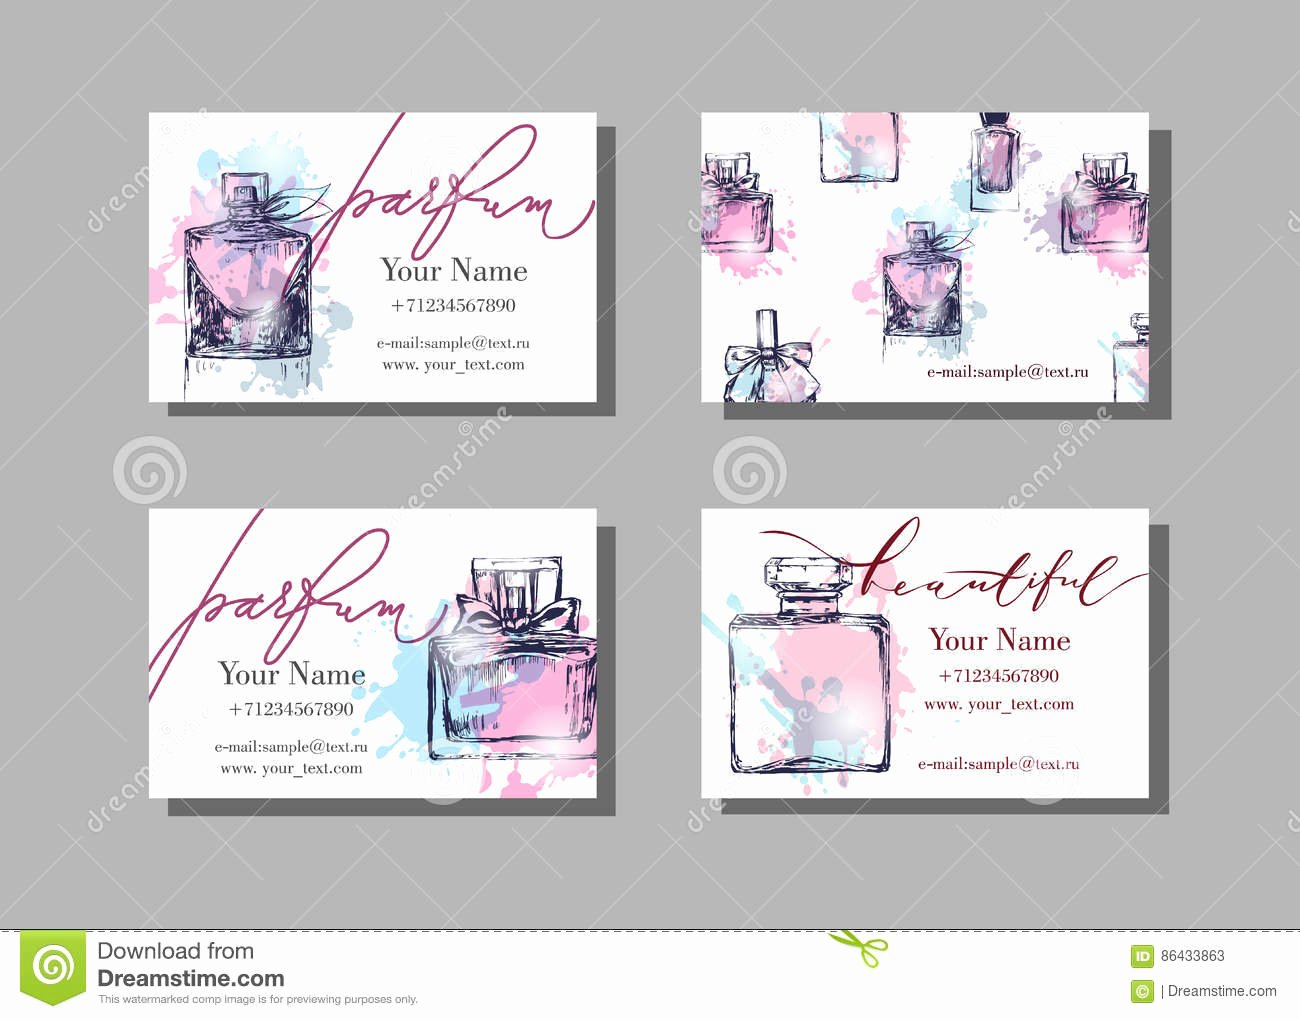 stock illustration makeup artist business card vector template beautiful perfume bottle fashion beauty background eps image